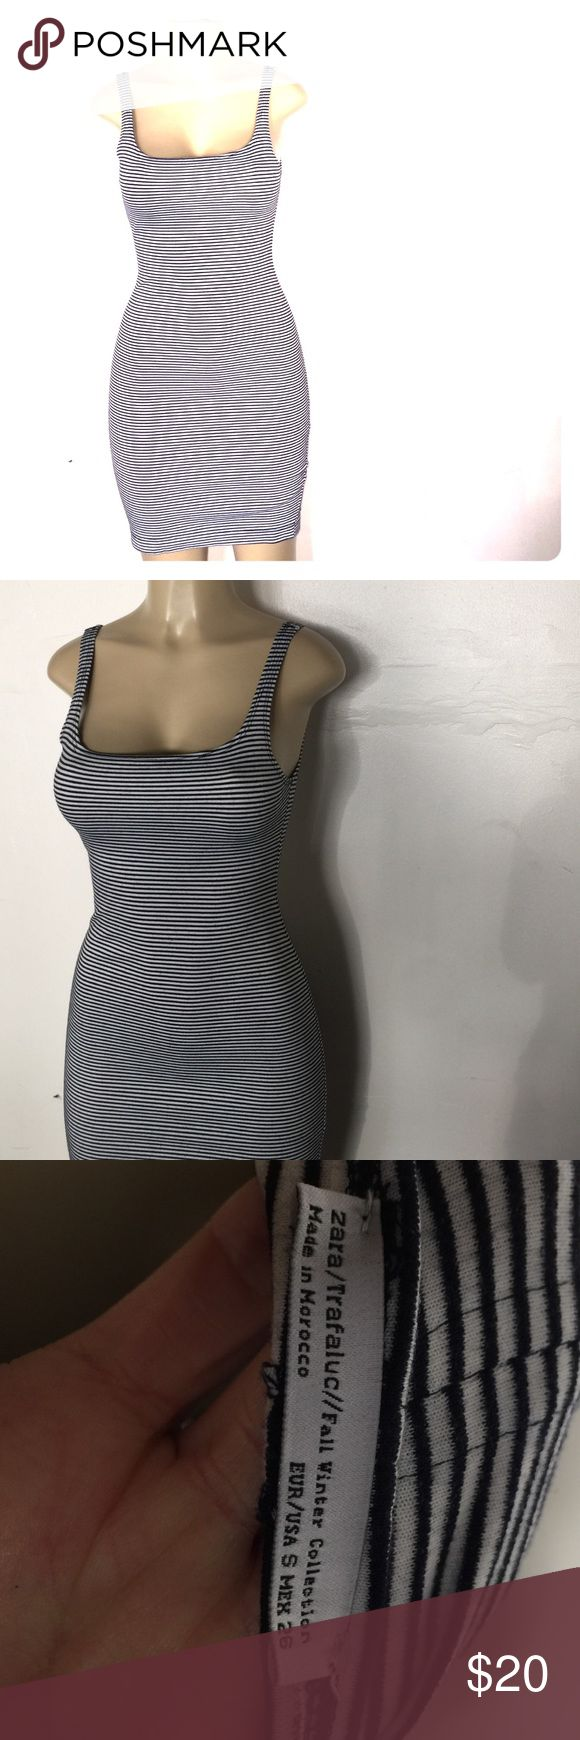 Zara Striped Mini Dress Navy and white stripe Zara dress. Perfect condition. Size small. Feel free to ask questions. No holds & No Trades Zara Dresses Mini